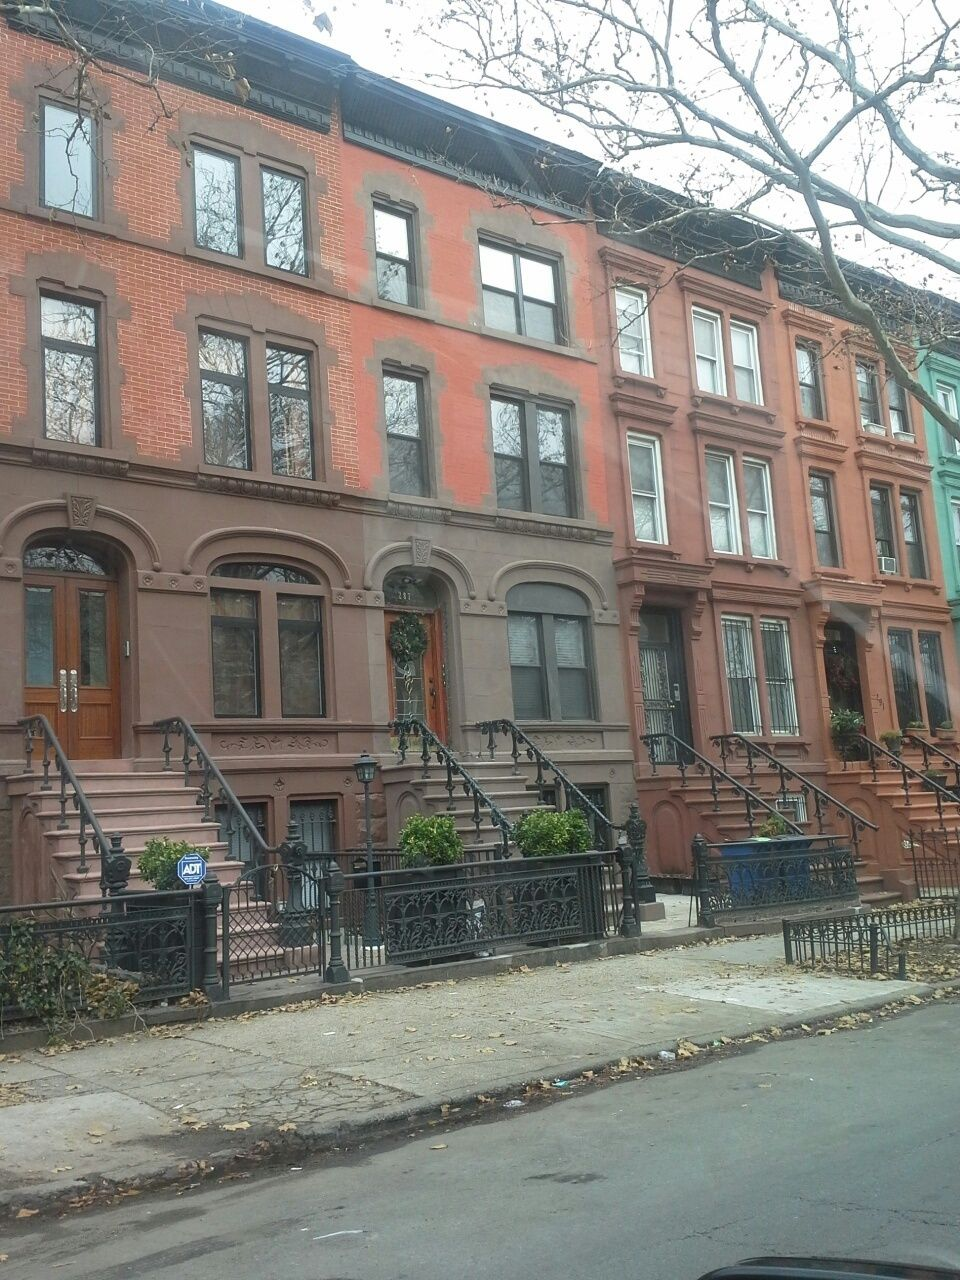 How Much Is My Home In Bedford Stuyvesant Brooklyn Worth Homes